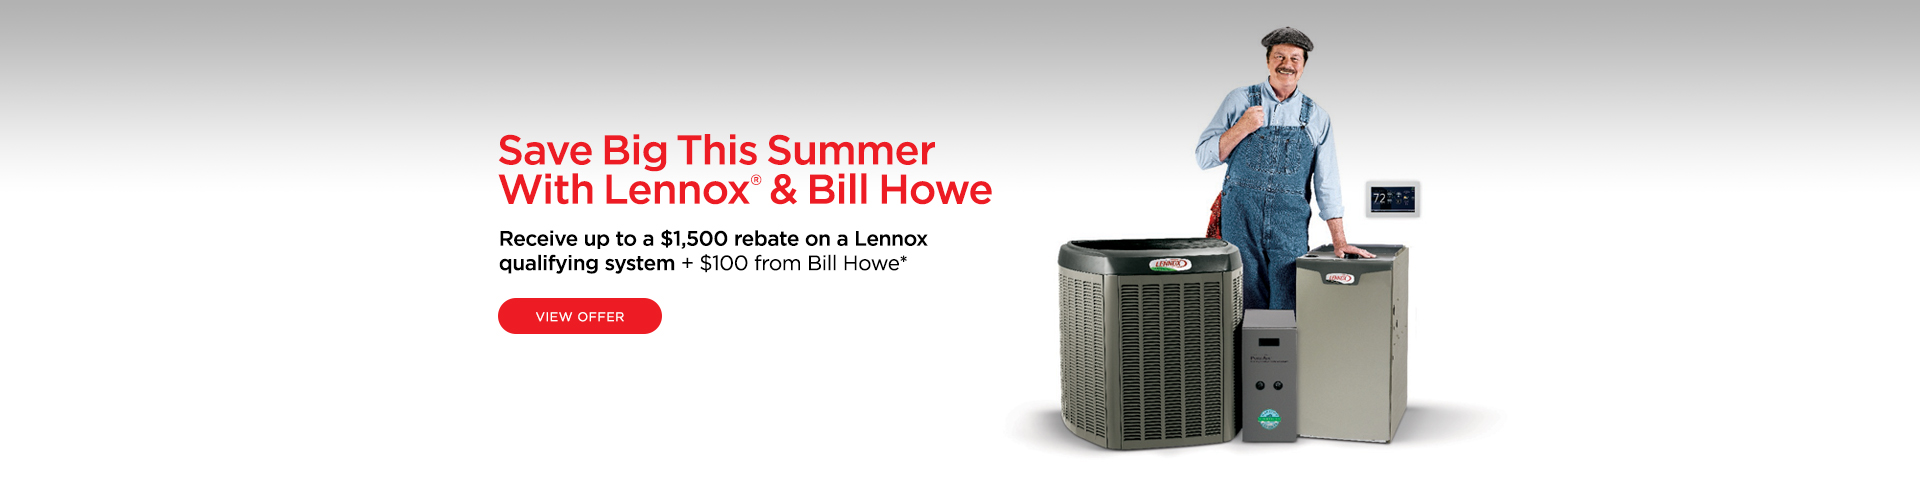 Bill-Howe_Lennox-Summer-Rebate-Offer_